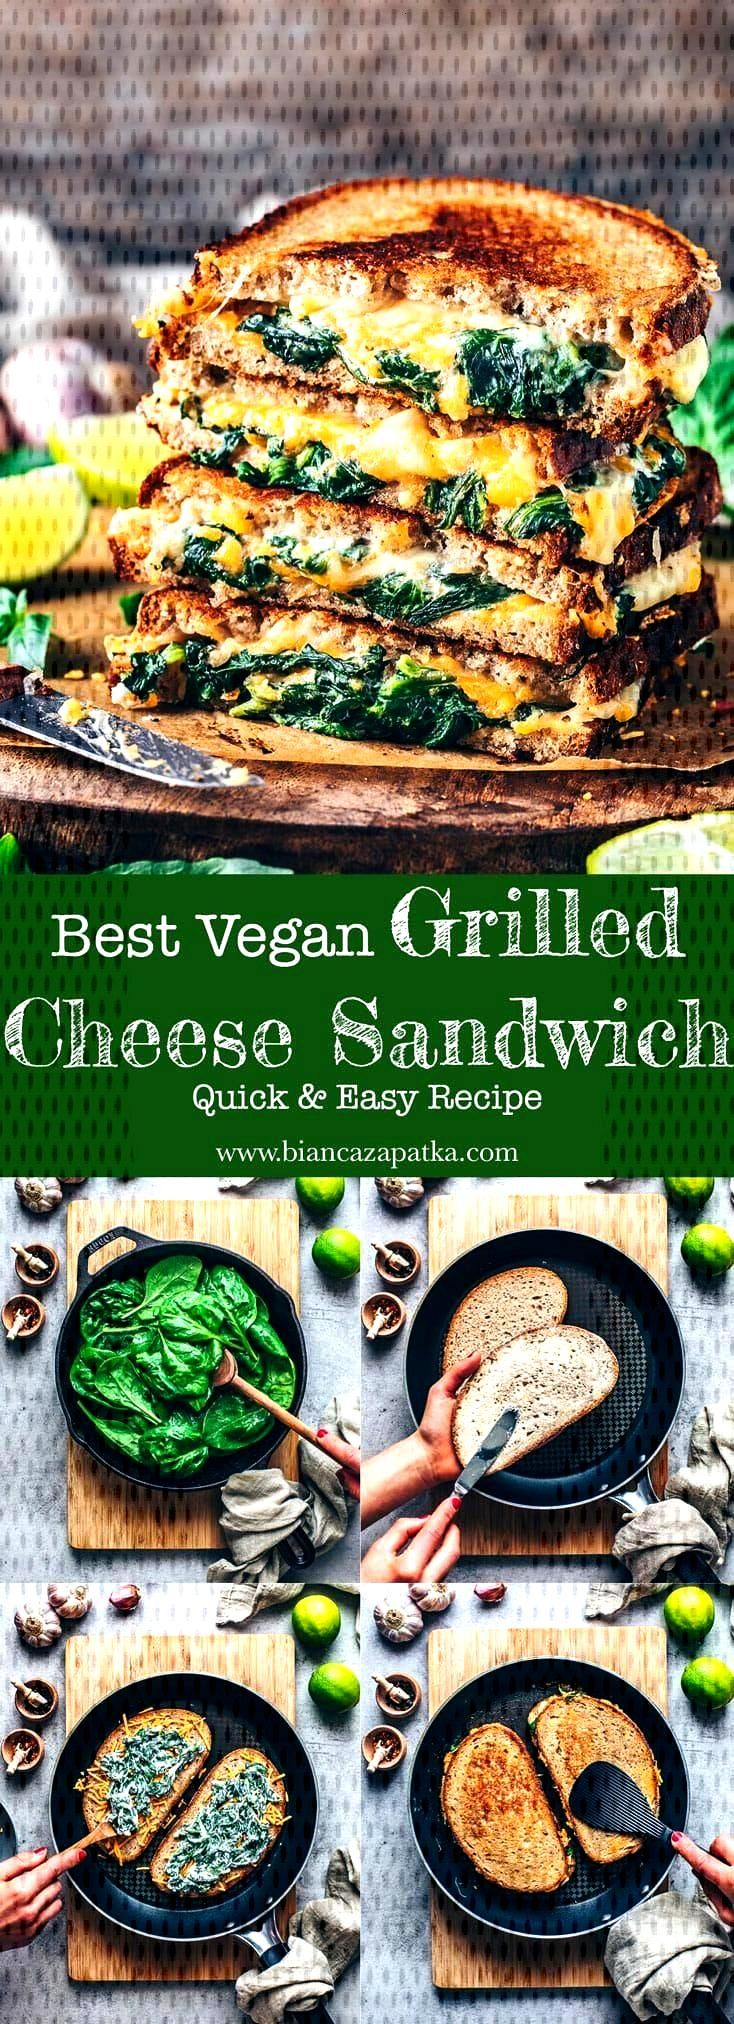 Vegan Grilled Cheese Sandwich Recipe | Easy - Bianca Zapatka | Recipes  - Healthy dinner -